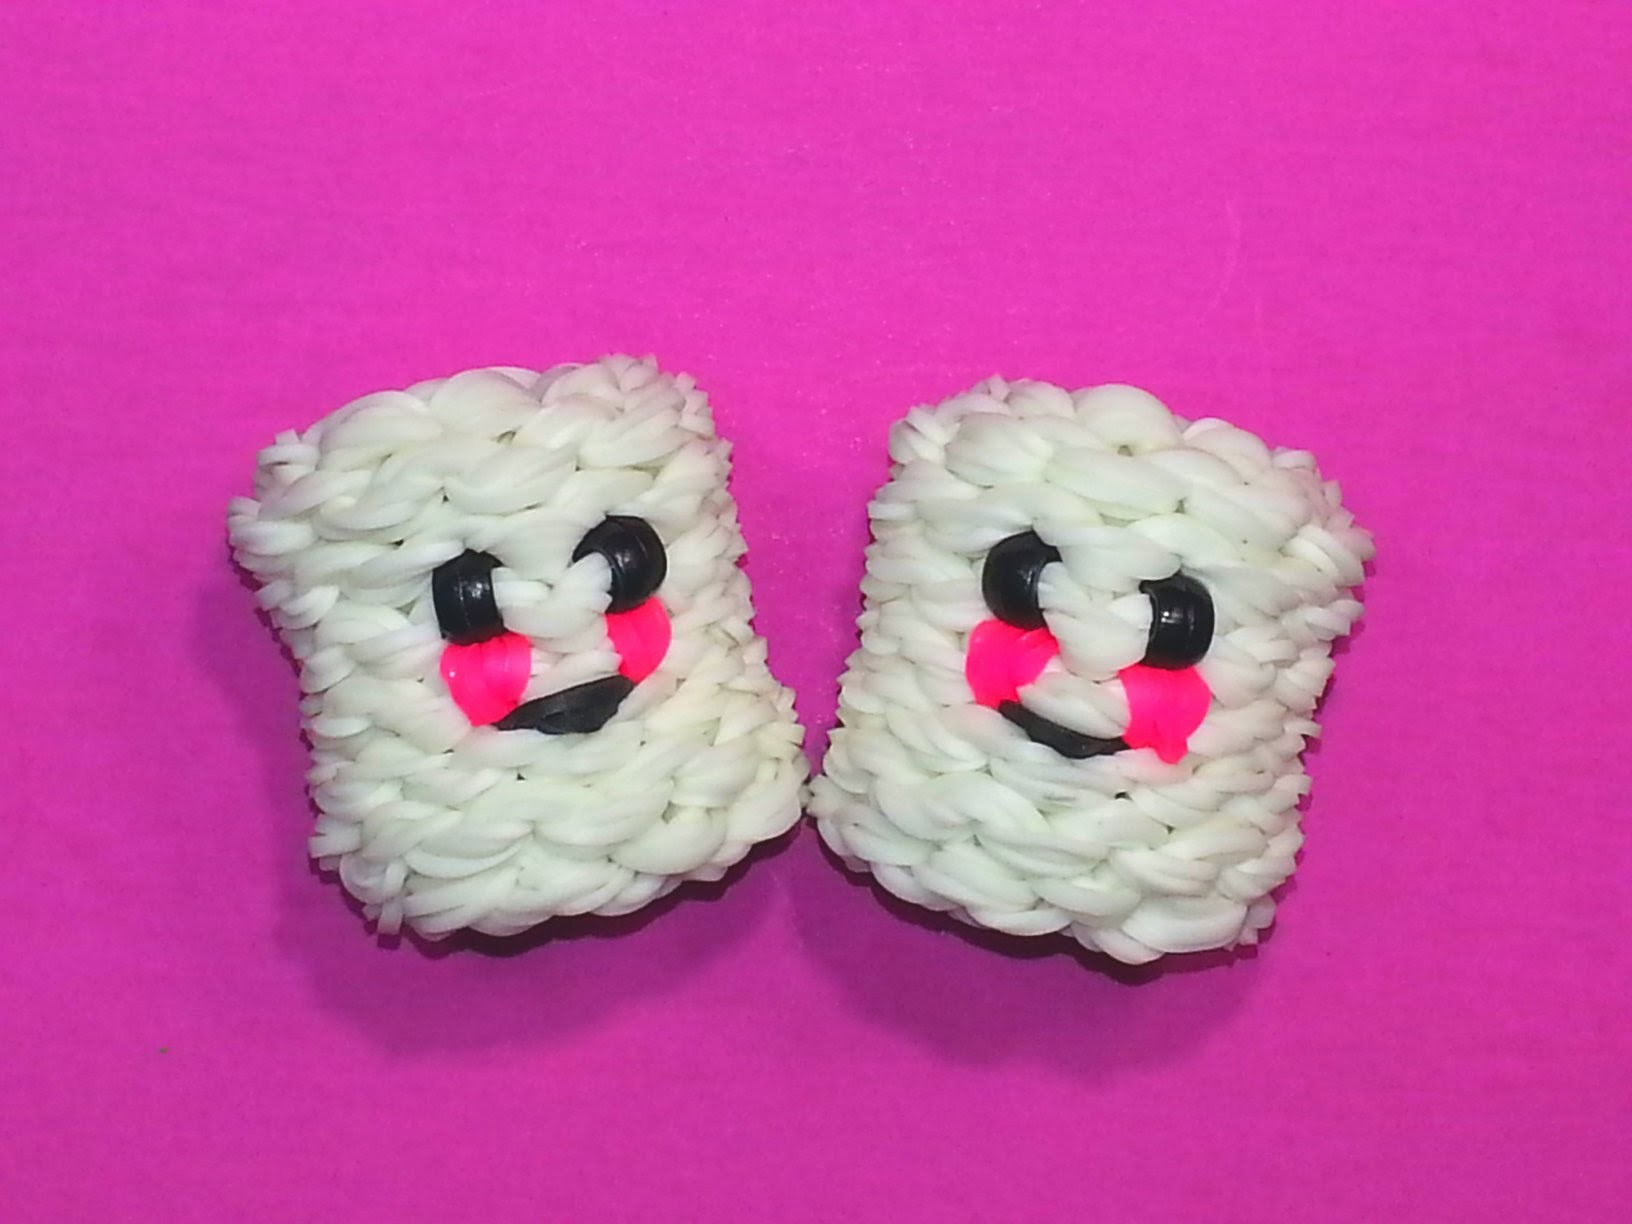 Rainbow Loom - pianka marshmallow :)